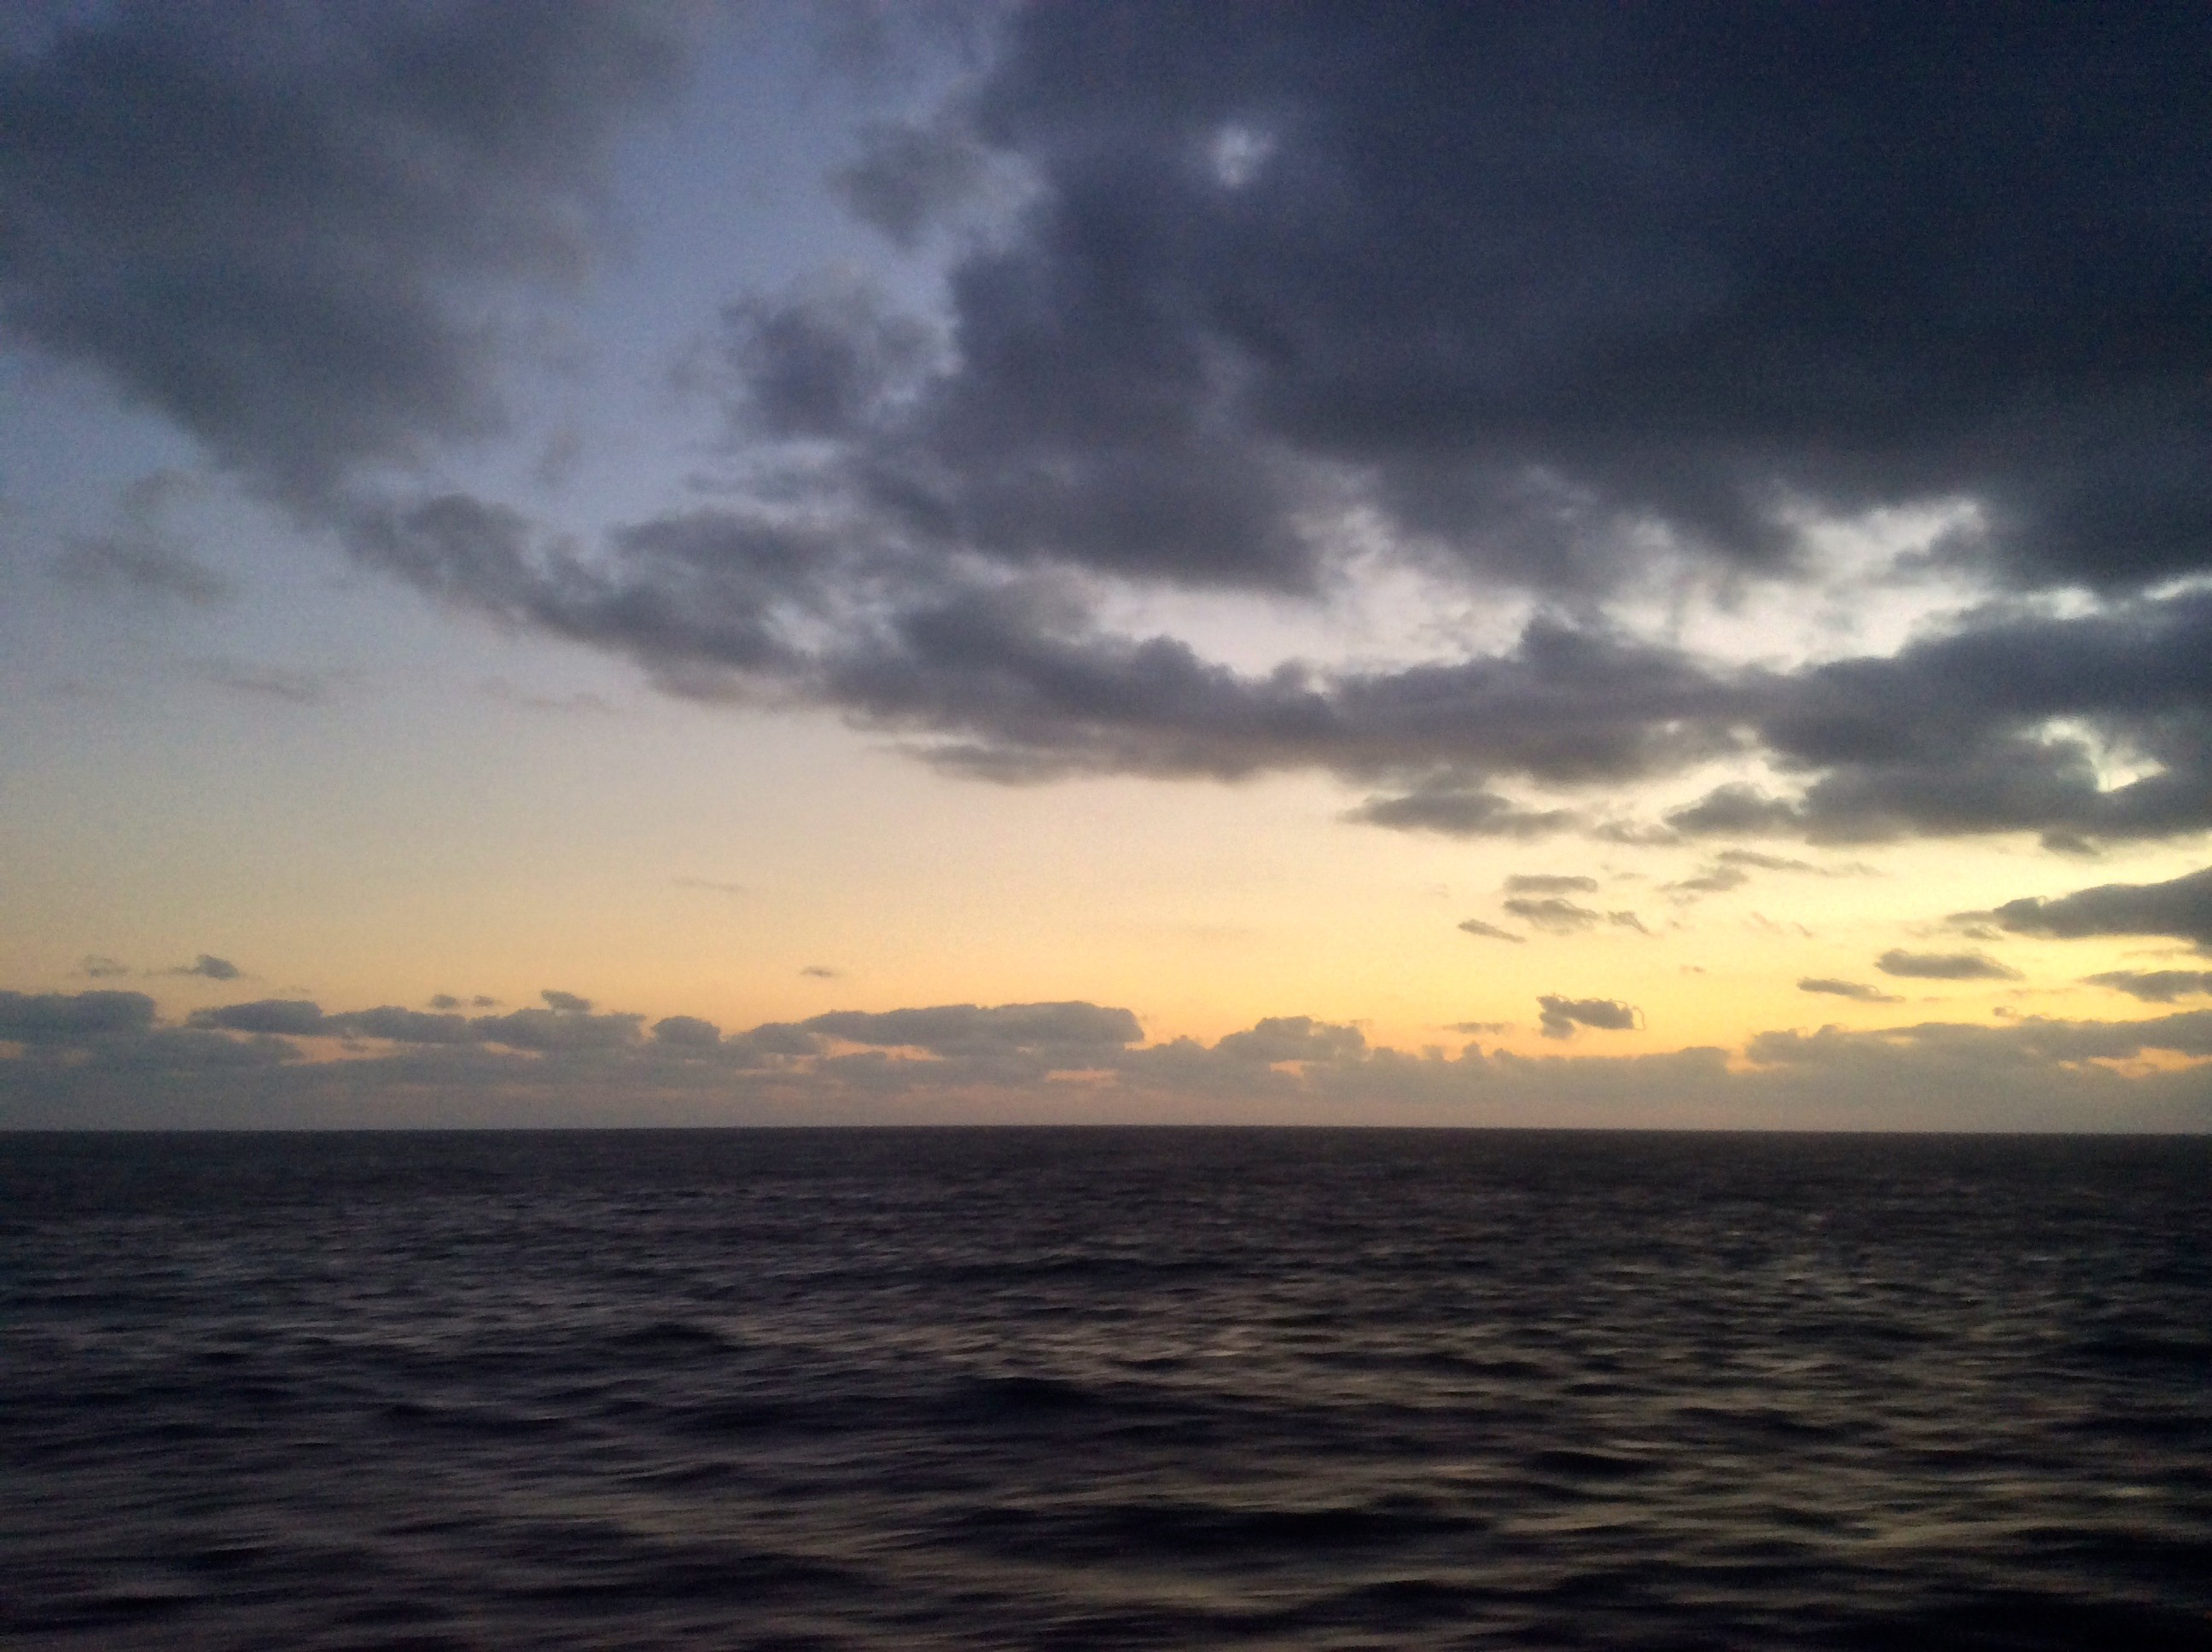 A photo of the sun rising over the Mediterranean